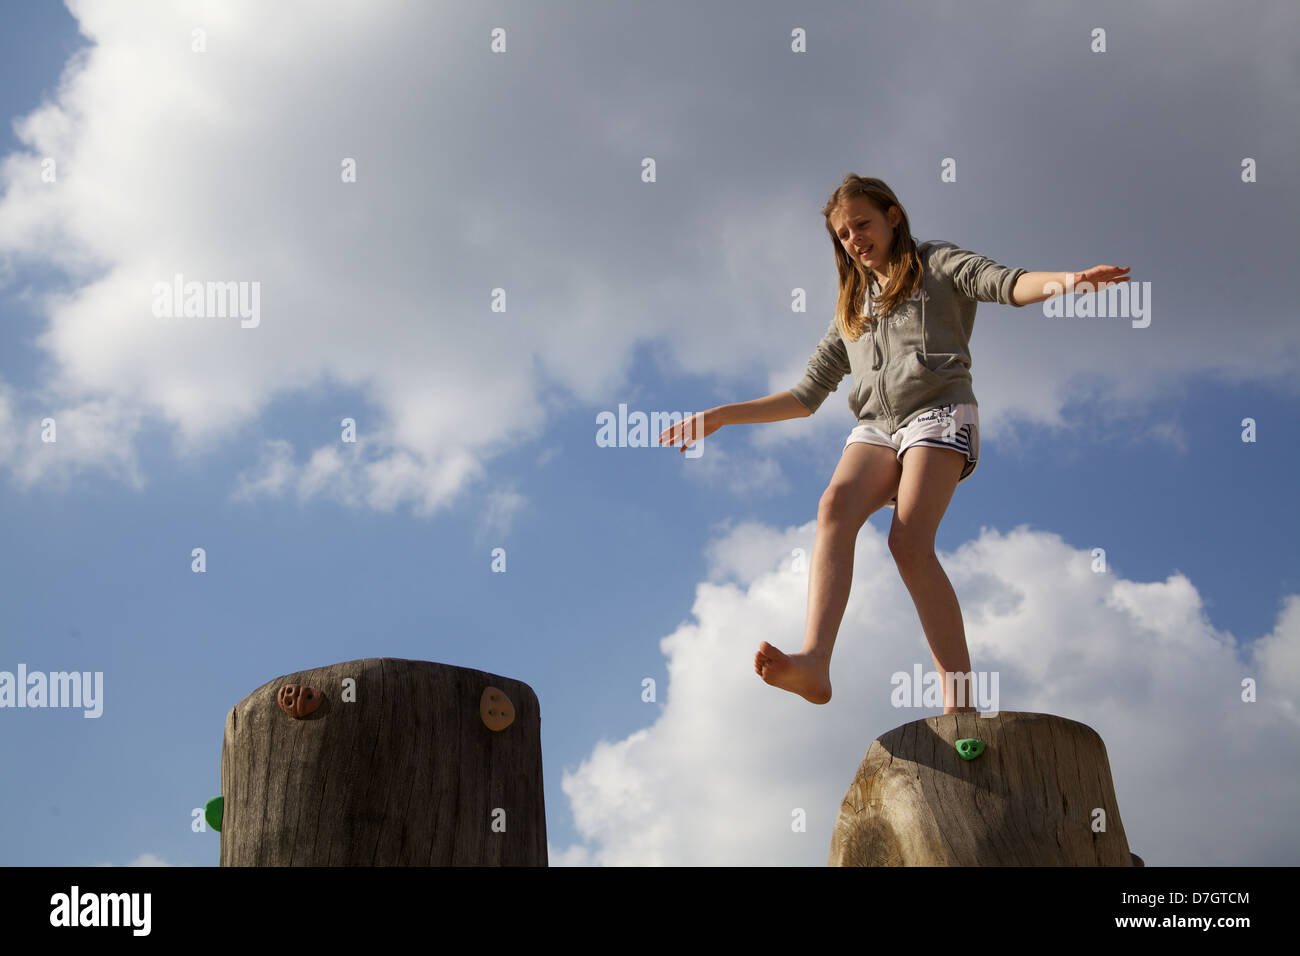 girl balancing on tree trunk attempting to take a wide step - Stock Image